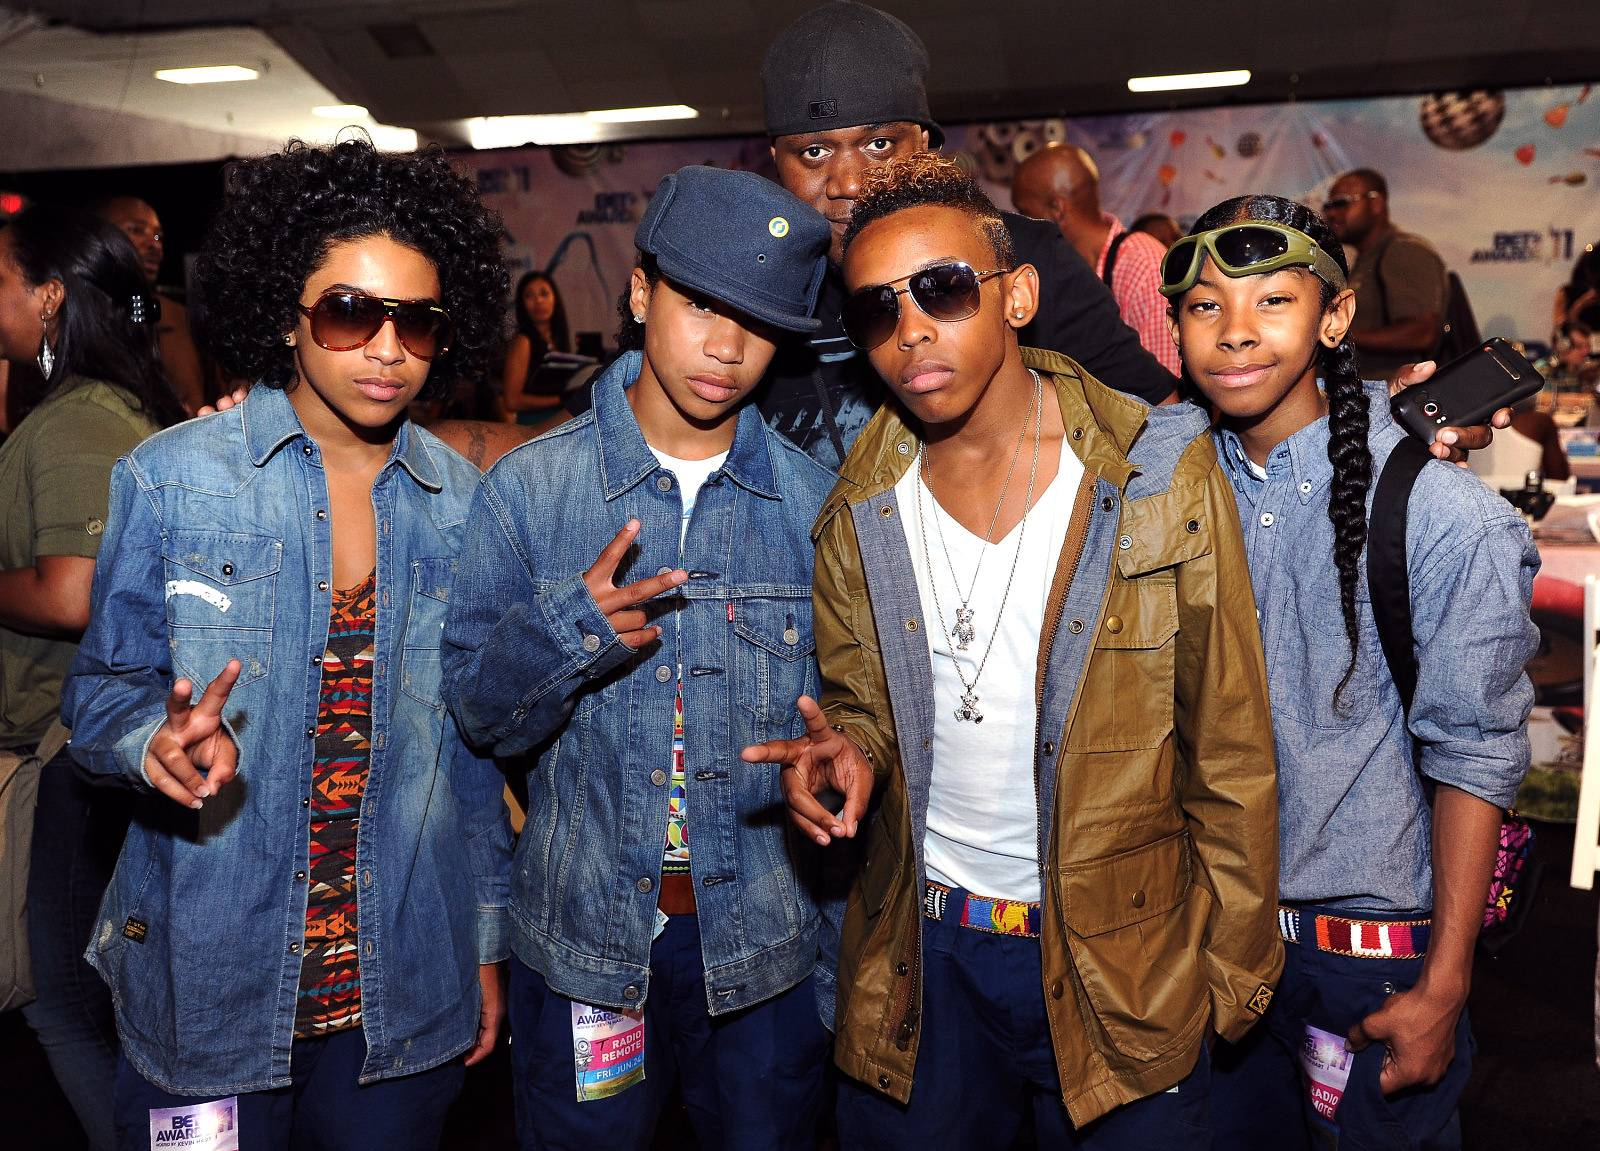 Denim Style  - Mindless Behavior in the radio room at the BET Awards 2011, held at the Shrine Auditorium on June 24, 2011, in Los Angeles, California.(Photo: Earl Gibson/PictureGroup)